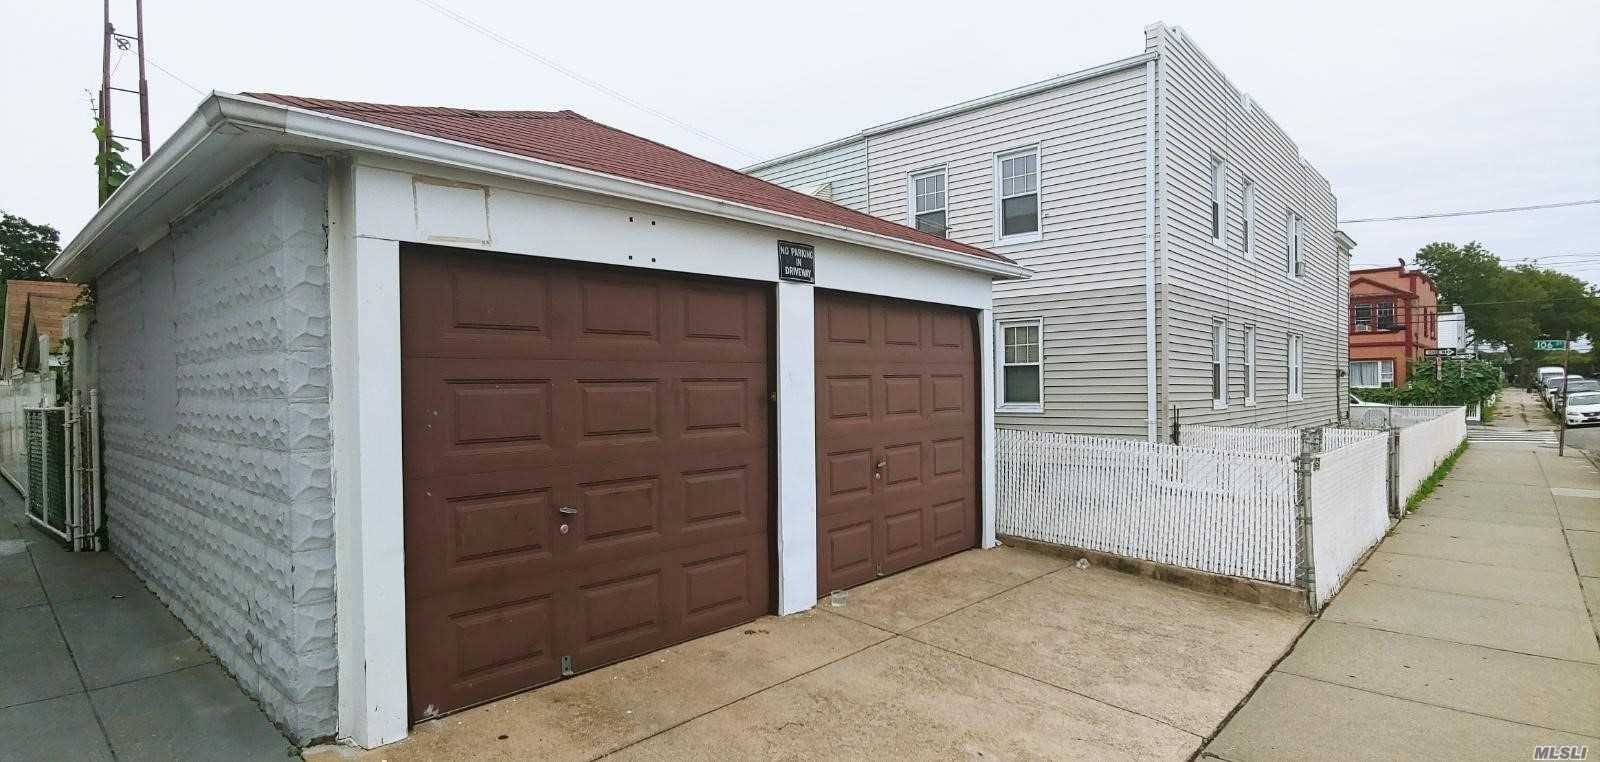 Ozone Park, Corner Property, Semi Detached 2 Family, New Kitchen, New Baths, New Flooring, All Modern; New Electrical, New Fixtures, 6 Over 5 Rooms, Skylight, Full Basement, New Boiler, Patio Area, 2 Car Garage, Great Location  Must See!